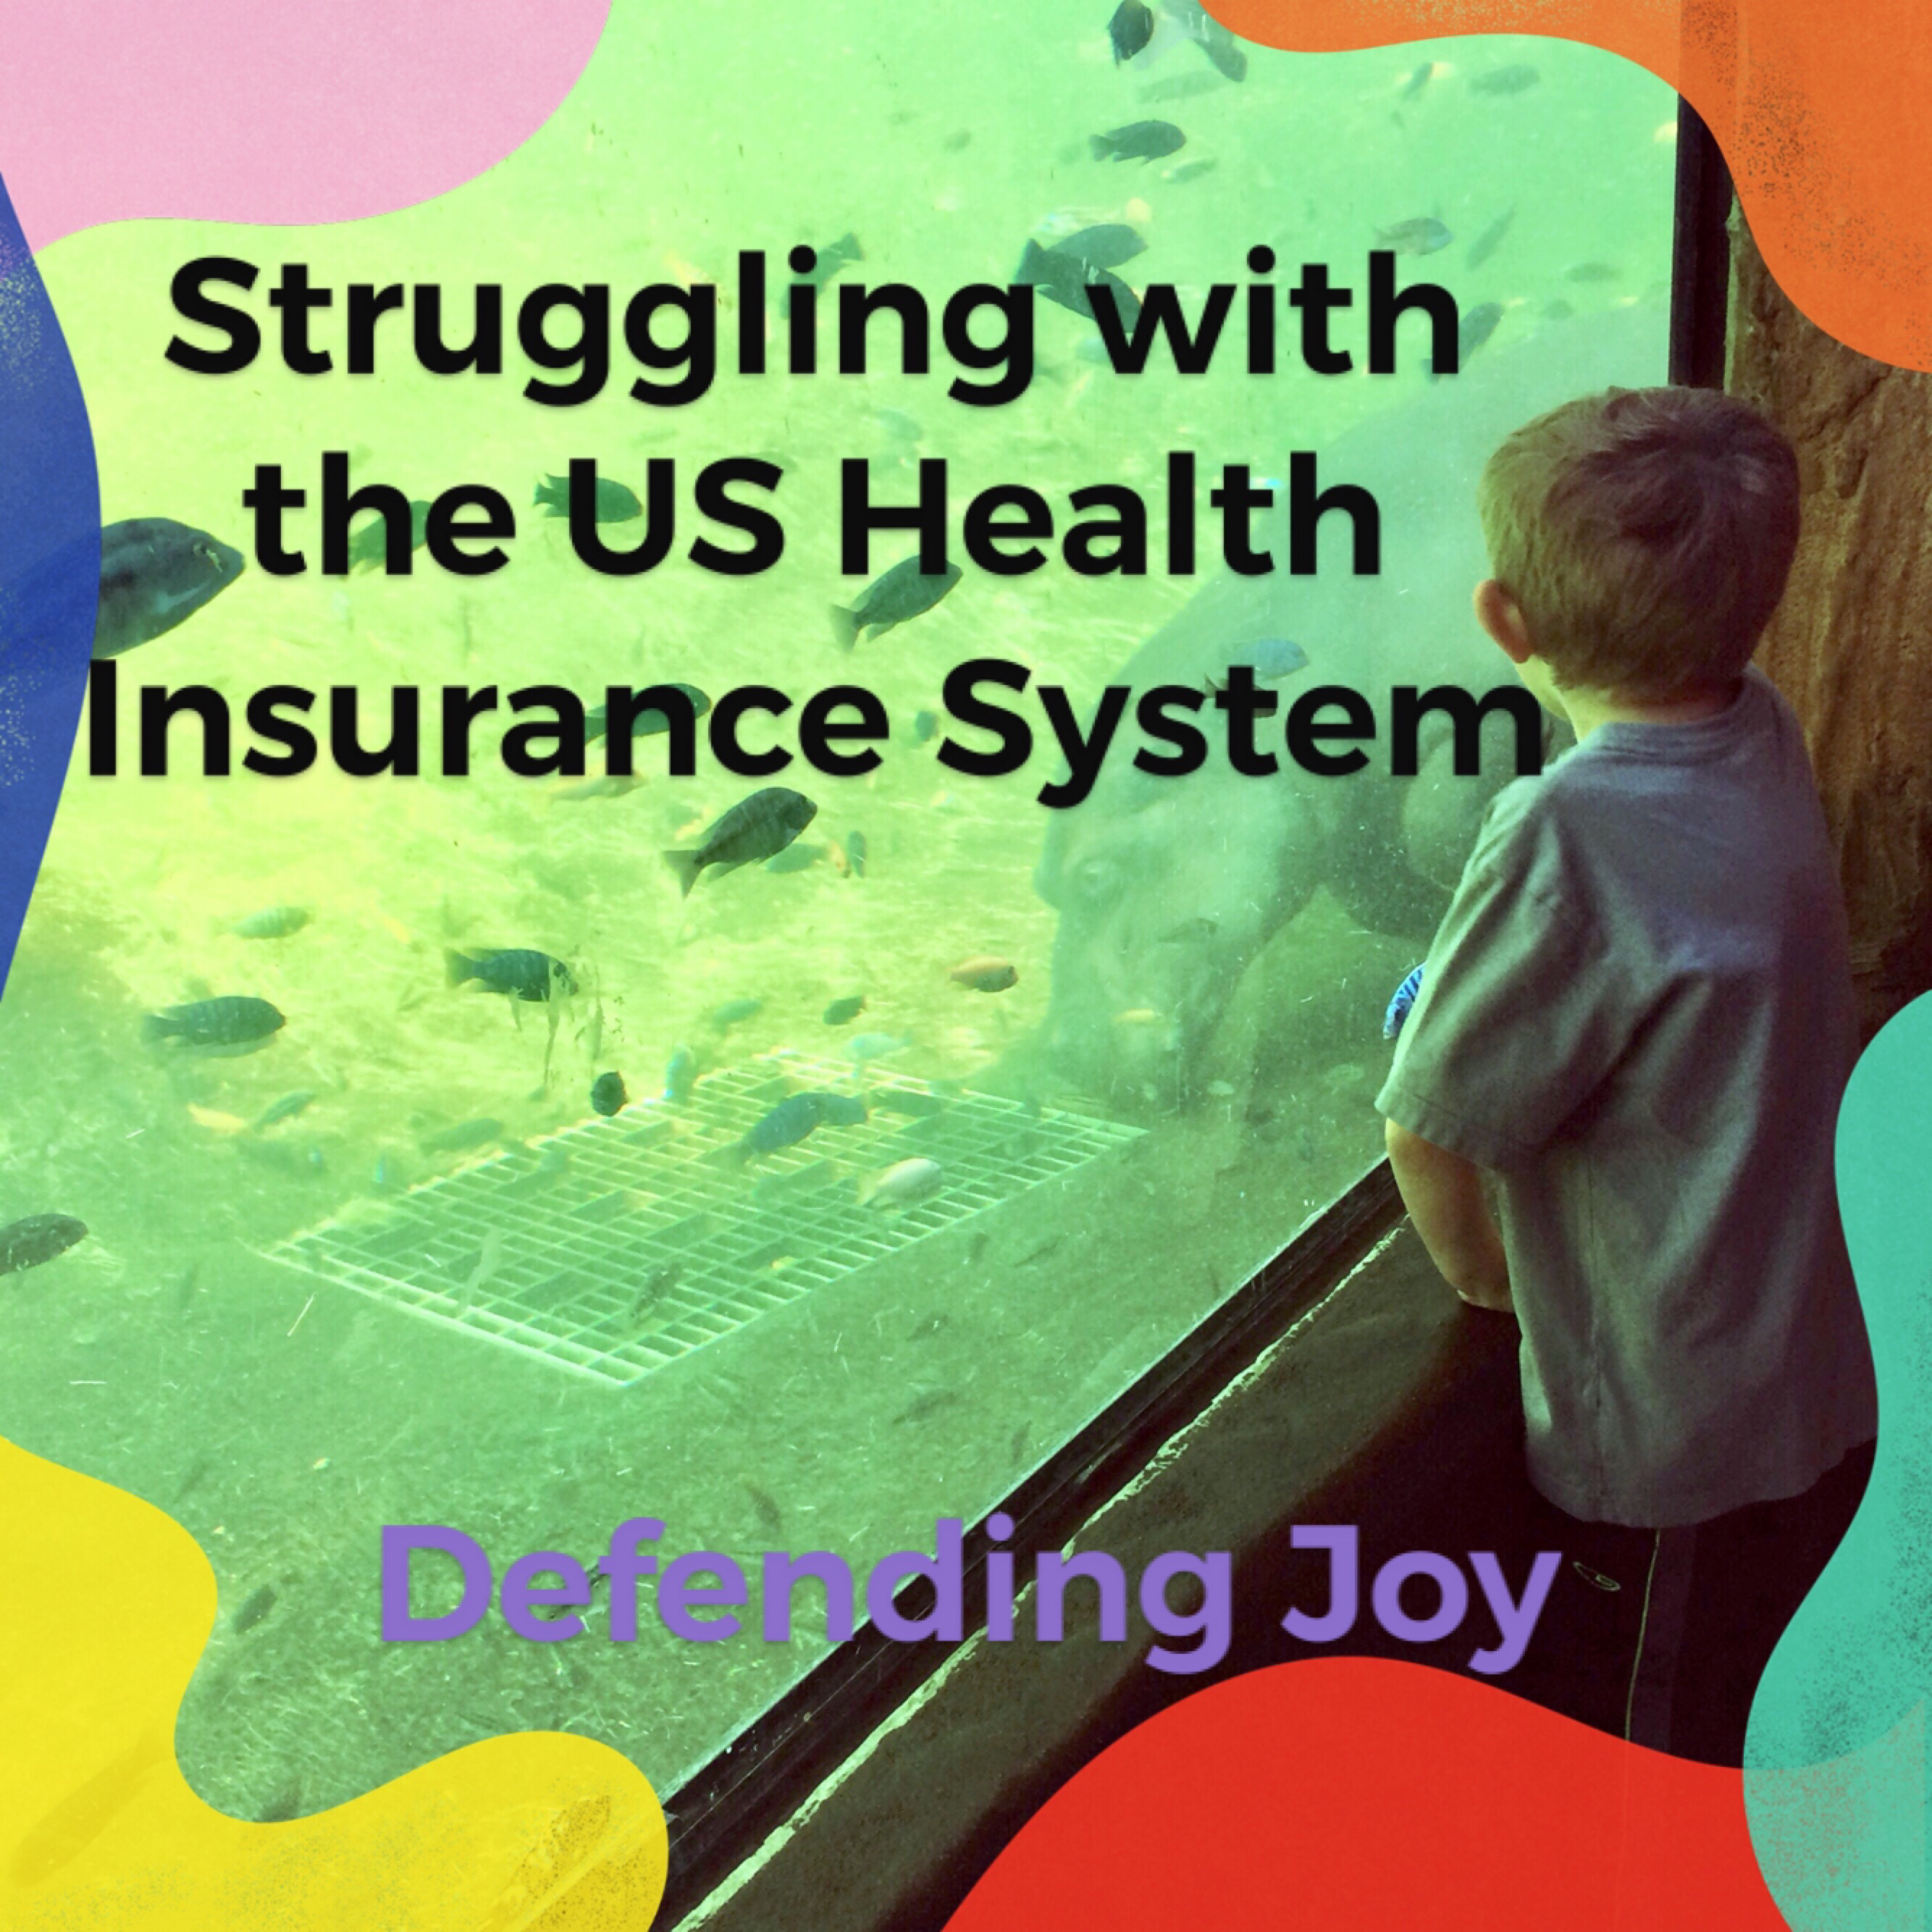 Struggling with the US Health Insurance System: Defending Joy, photo shows a child from behind looking off into an aquarium